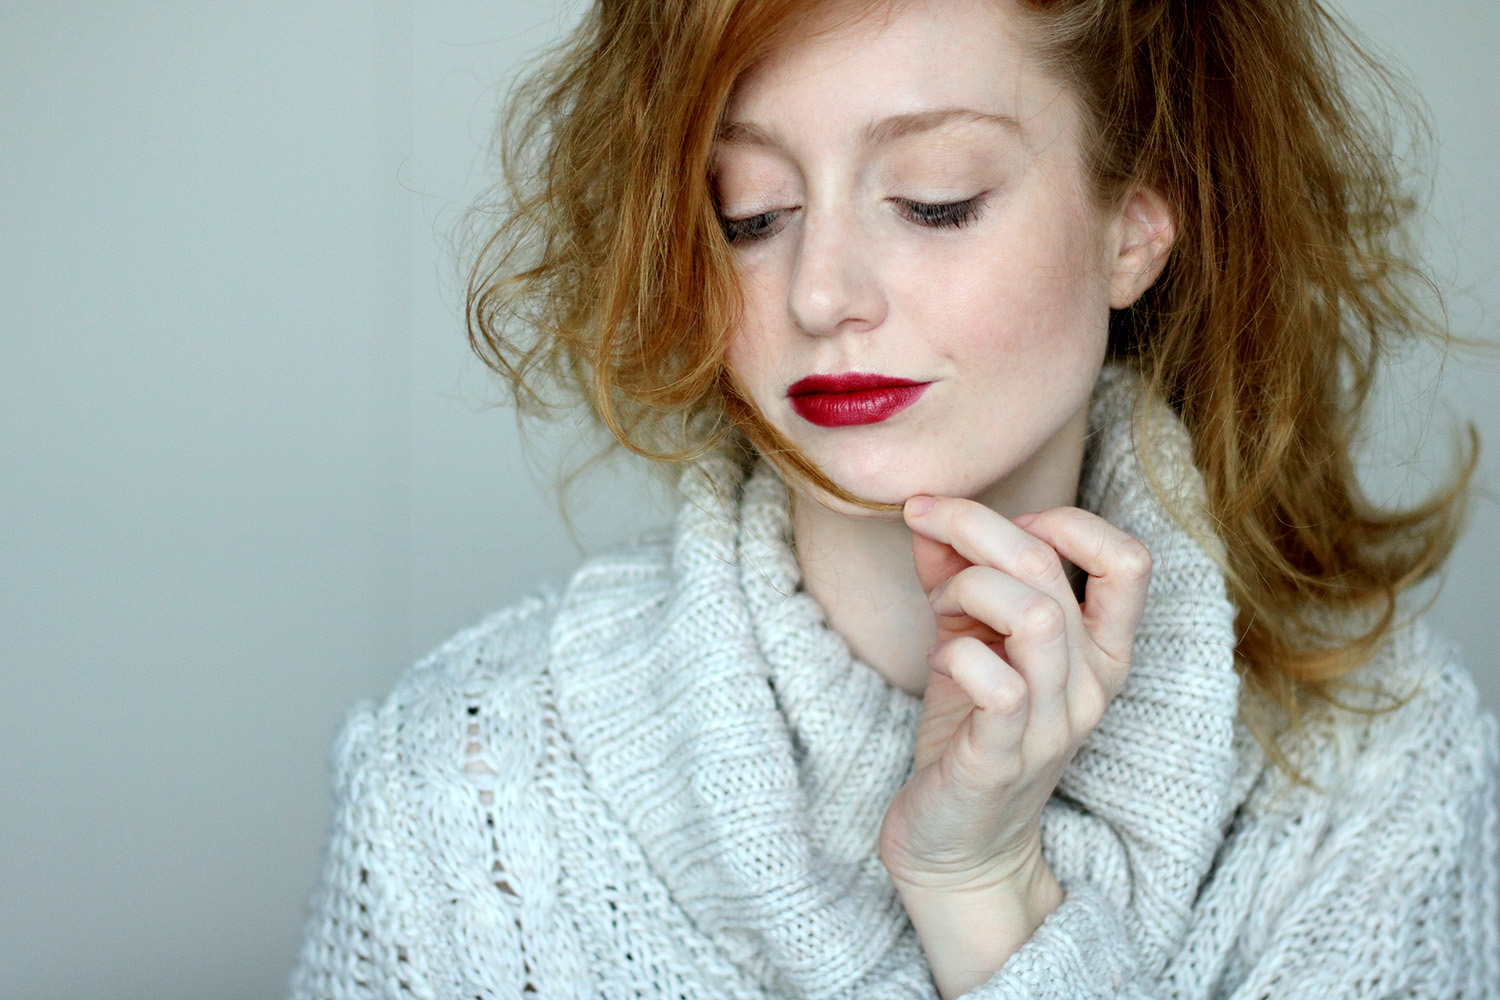 Advance Your Style, Beautyblog, Berlin, Influencer, Monday's Makeup, Fokus auf den Lippen, helle Haut, Valentinstag, Beautytipps, Makeuptipps, Makeup Tutorial, Maybelline New York, Moisture Extreme Lippenstift, 590 Burgundy, ZOEVA Naturally Yours